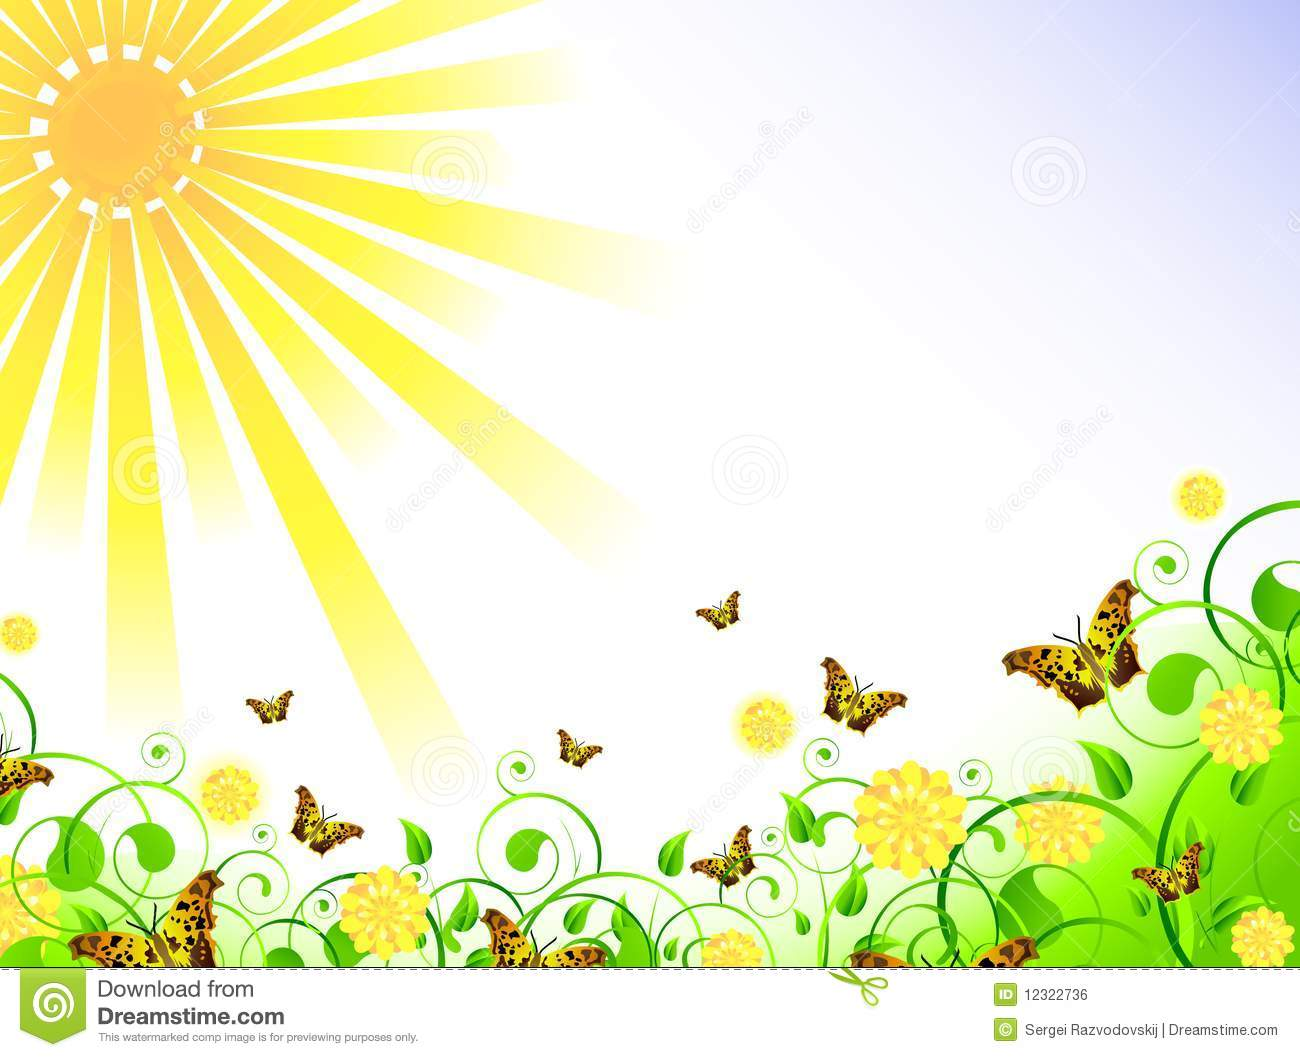 Illustration of spring theme with swirls, butterfly, foliage, sun and ...